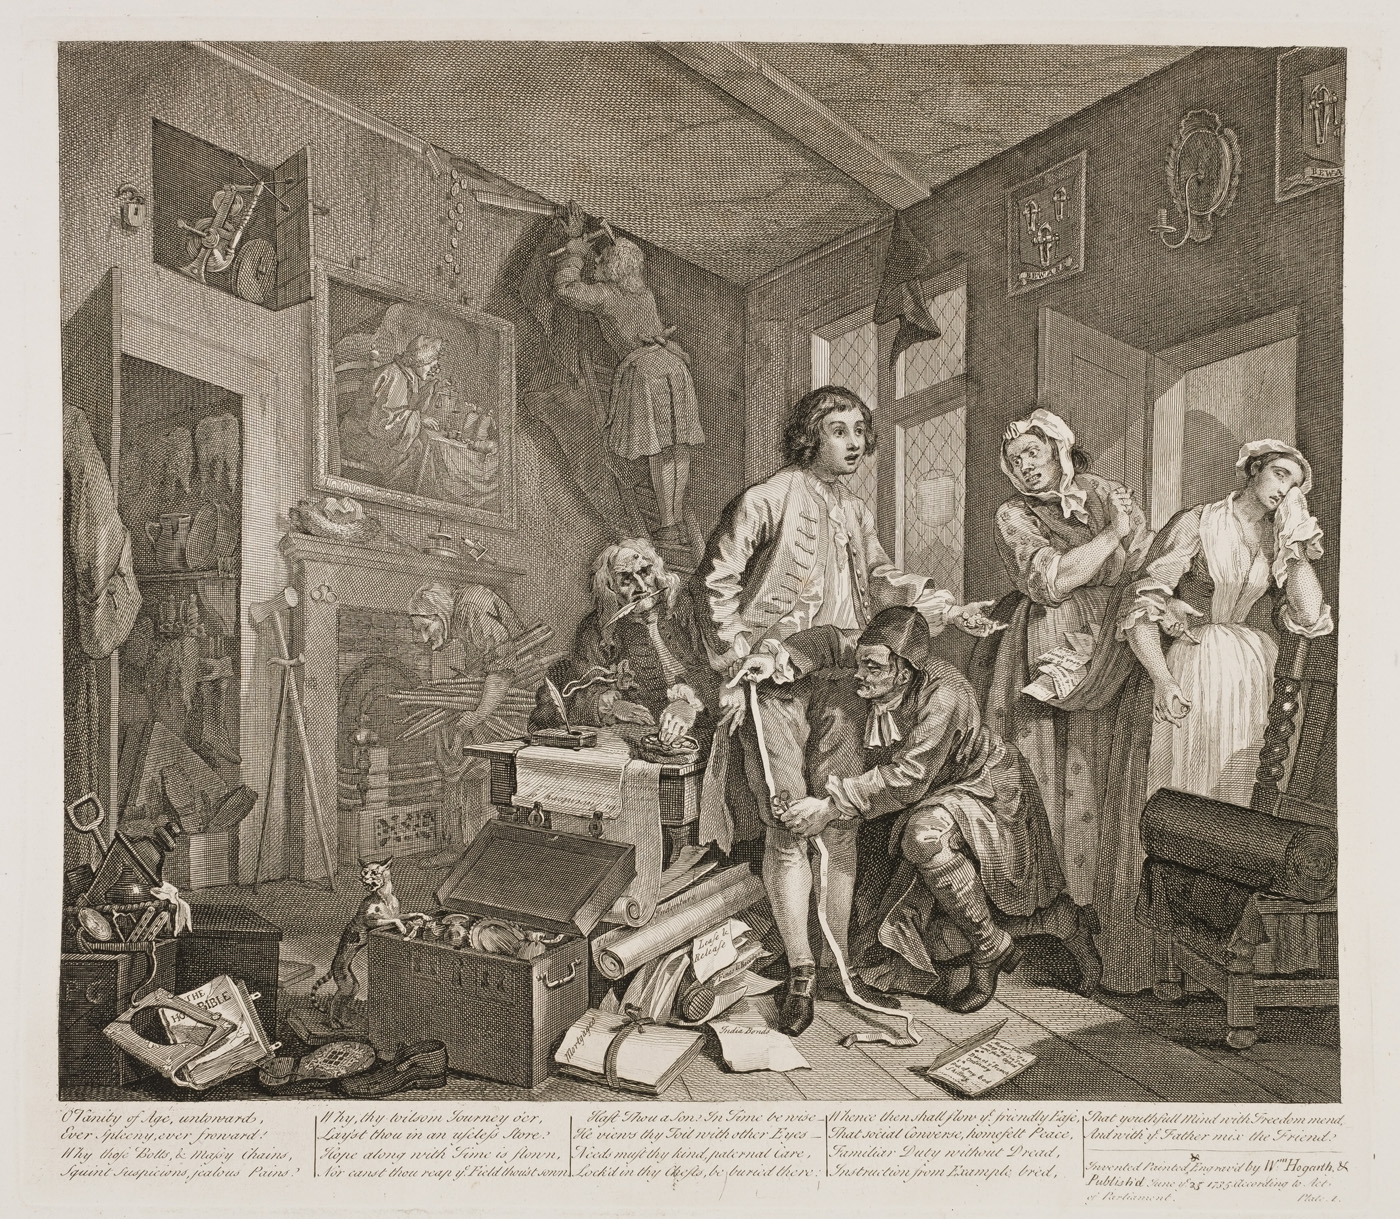 William Hogarth - The Rake's Progress plate 1